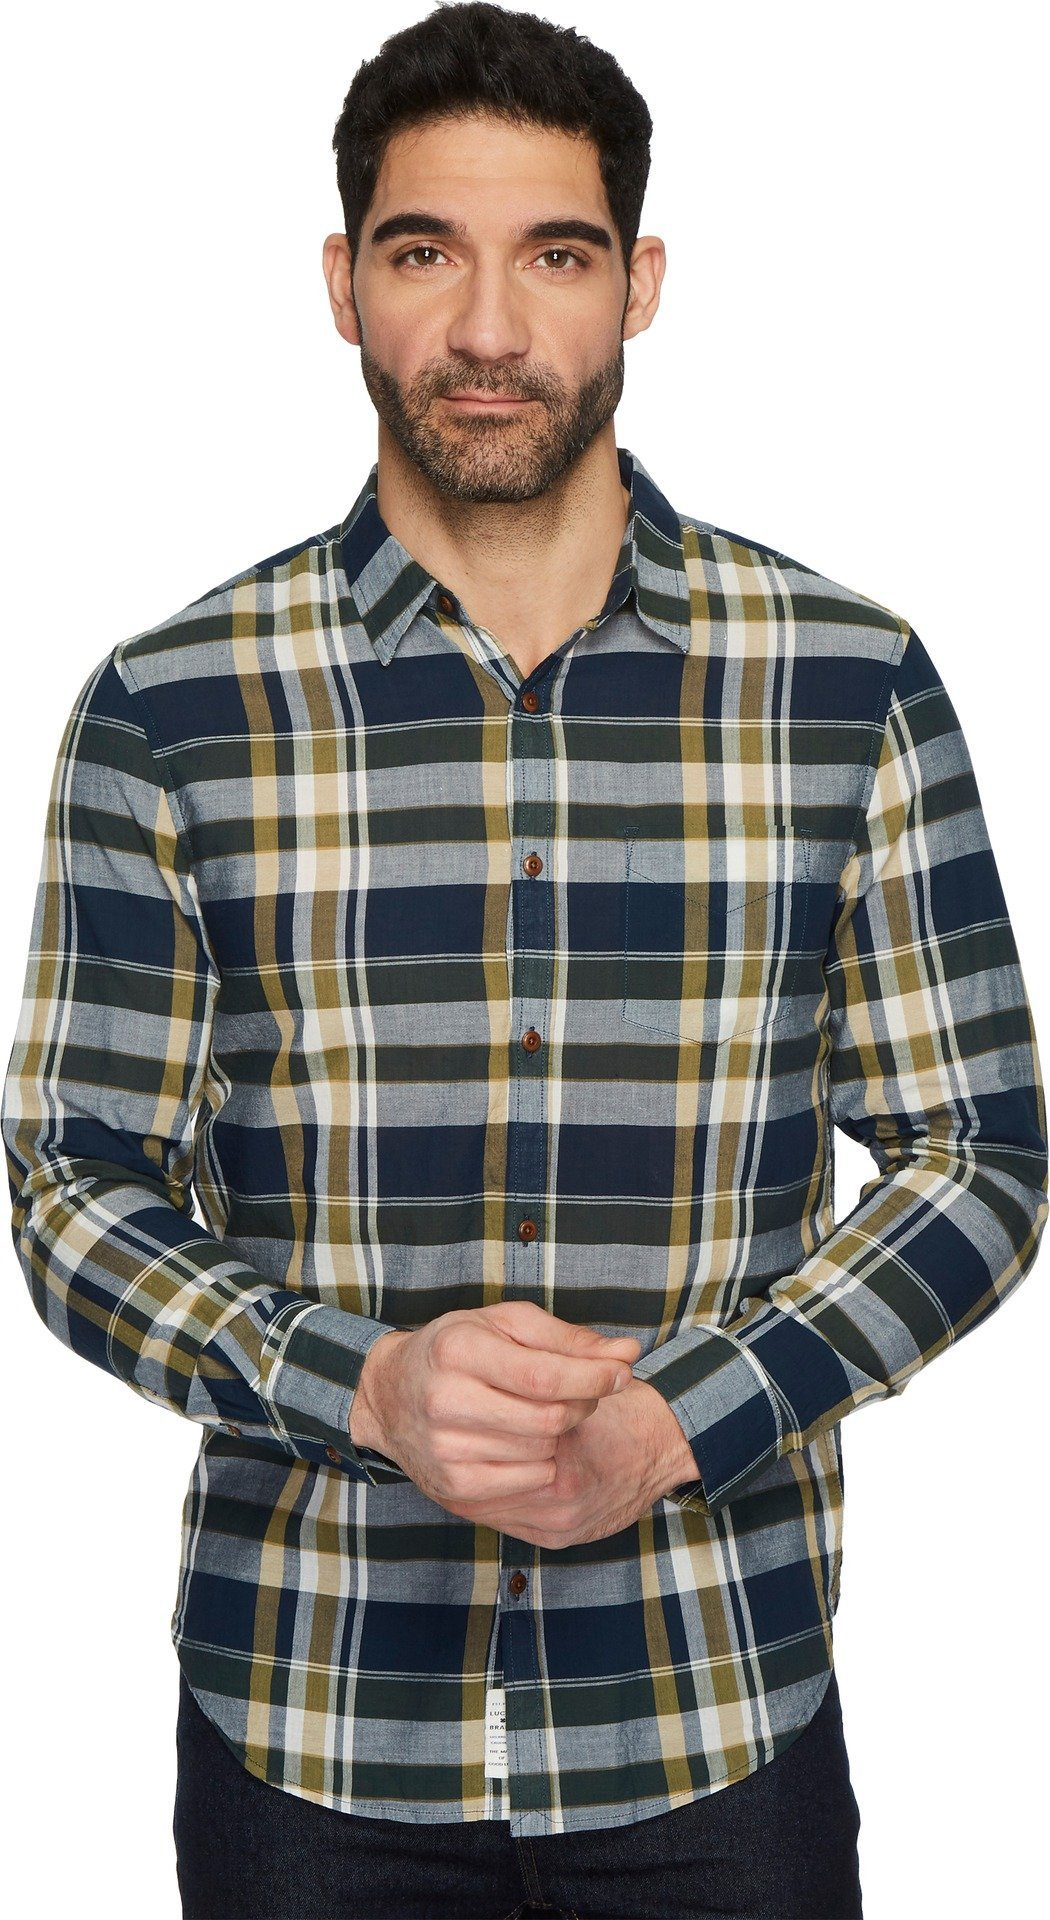 Lucky Brand Men's Casual Long Sleeve Plaid Ballona Button Down Shirt in Multi, Blue/Green, L